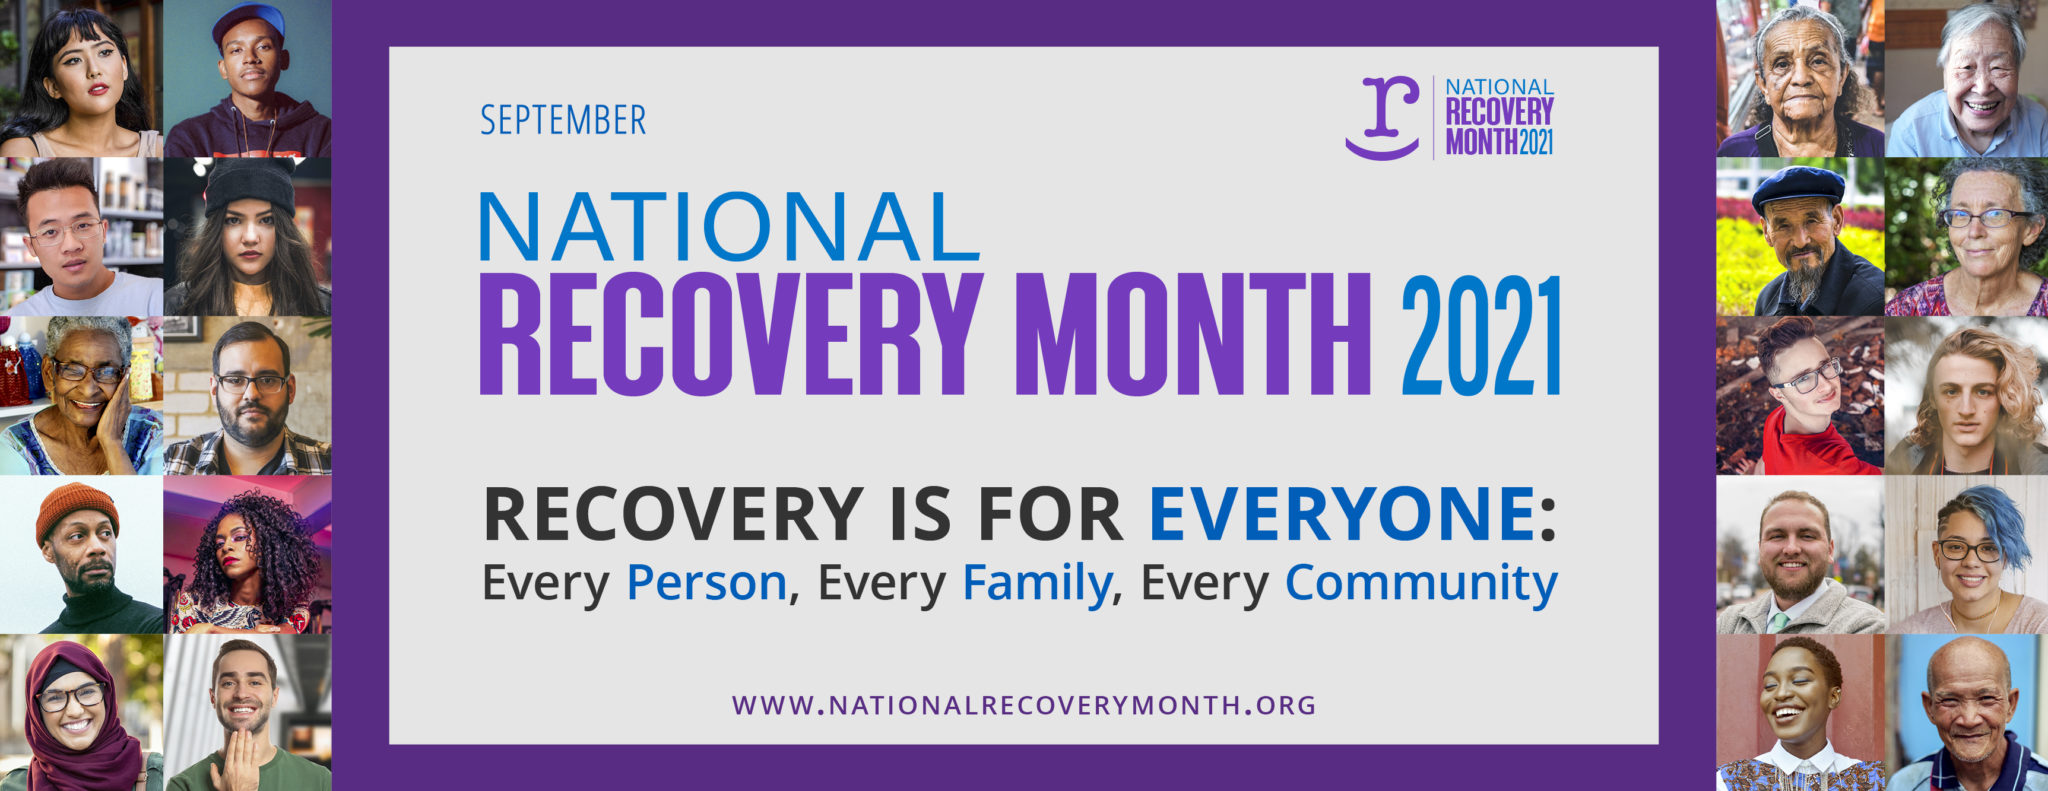 National Recovery Month 2021